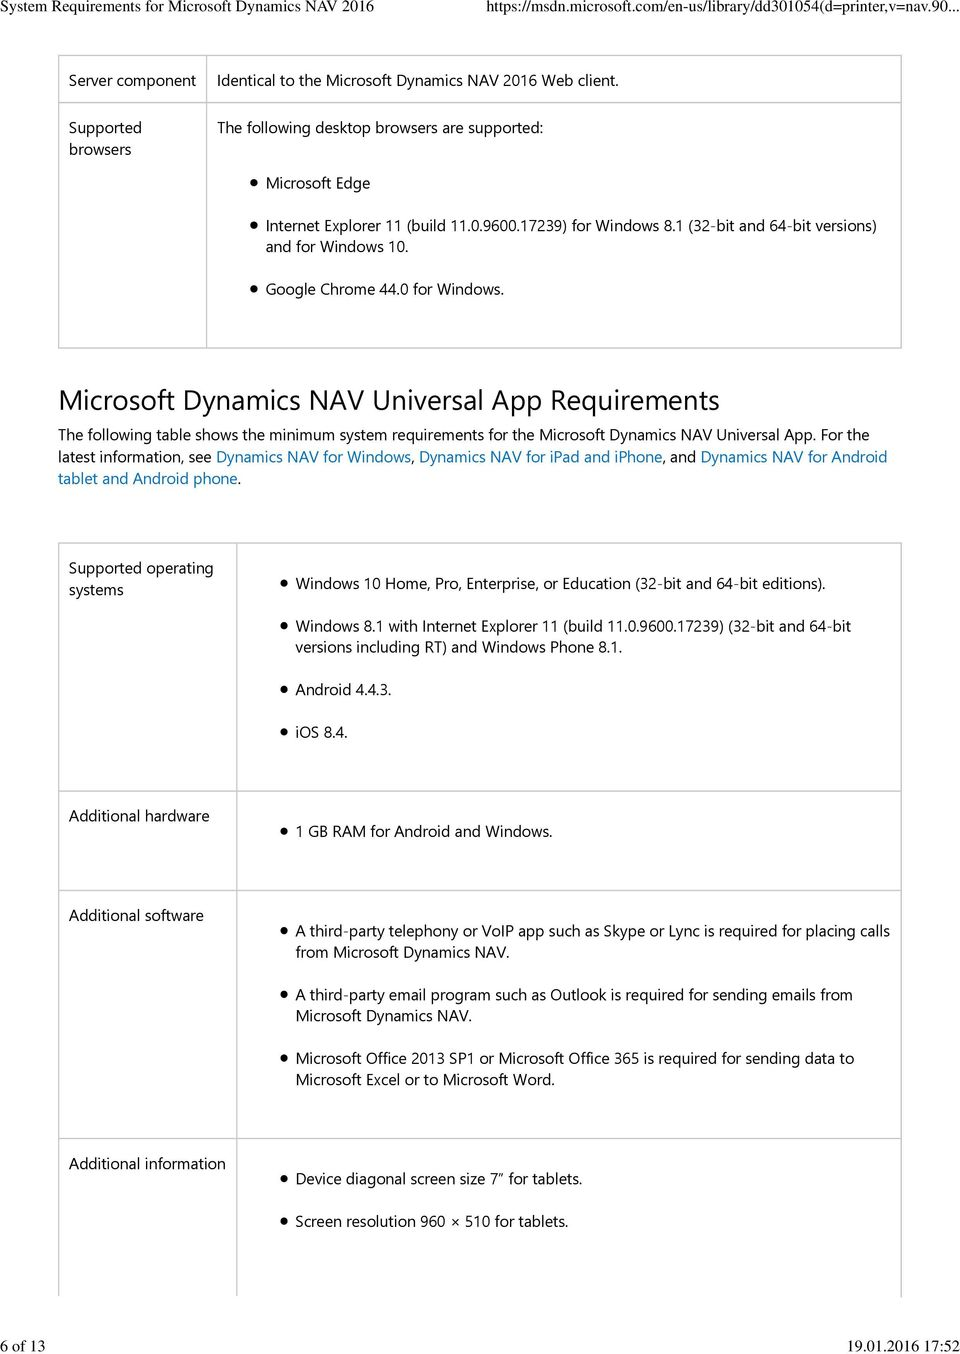 Google Chrome 44.0 for Windows. Microsoft Dynamics NAV Universal App Requirements The following table shows the minimum system requirements for the Microsoft Dynamics NAV Universal App.